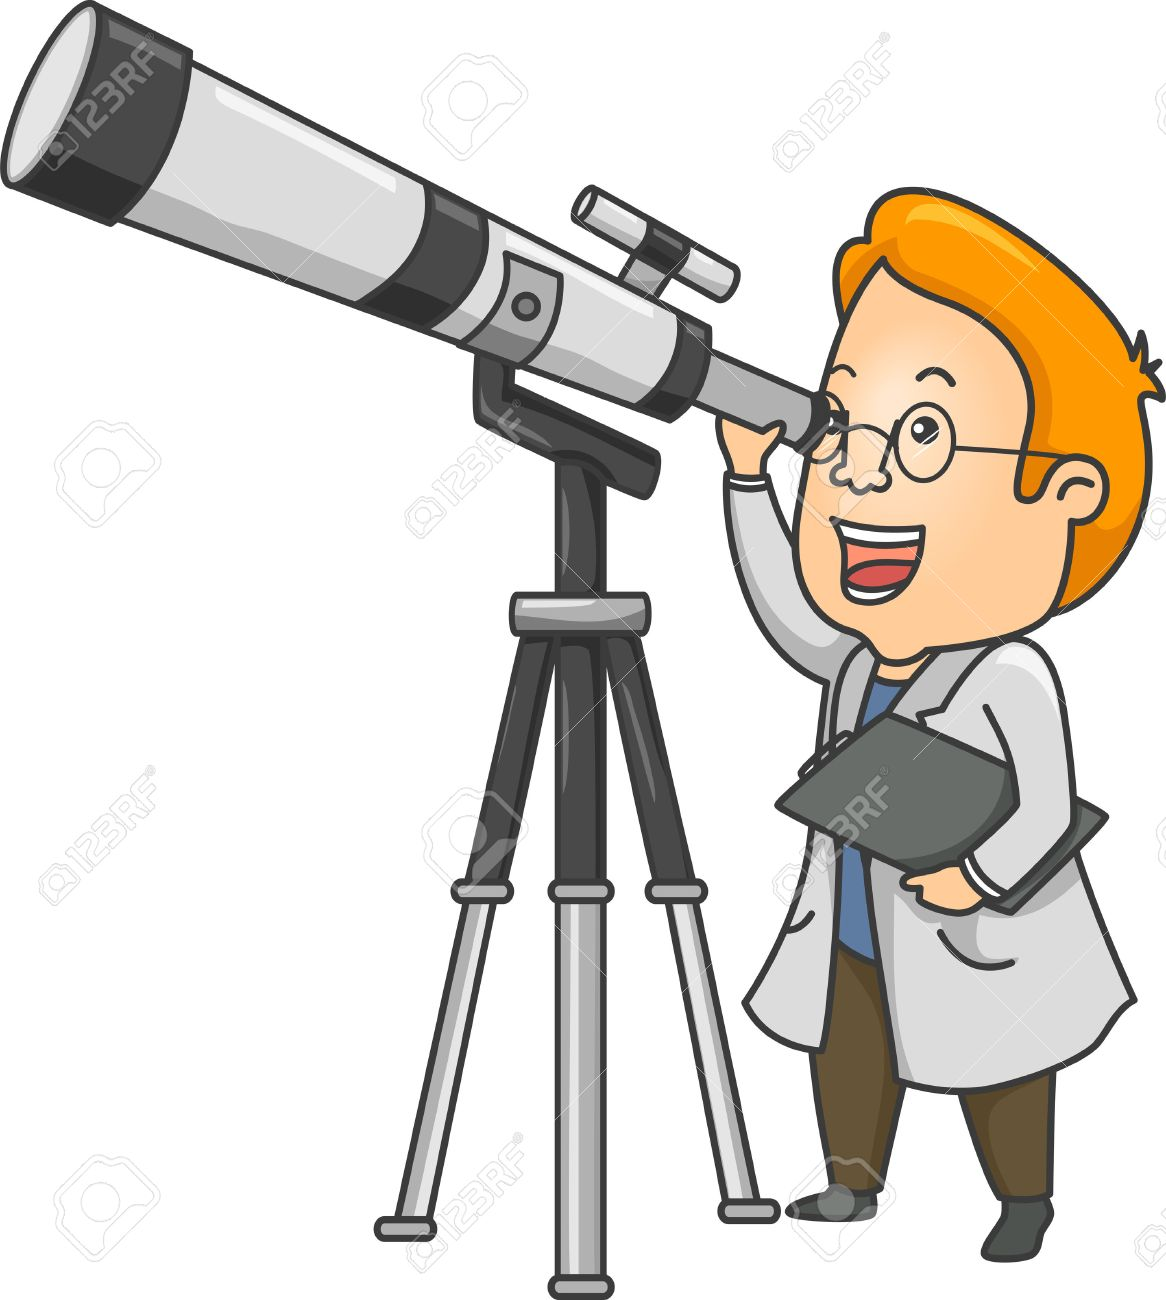 Illustration of a Researcher Using a Long Range Telescope.